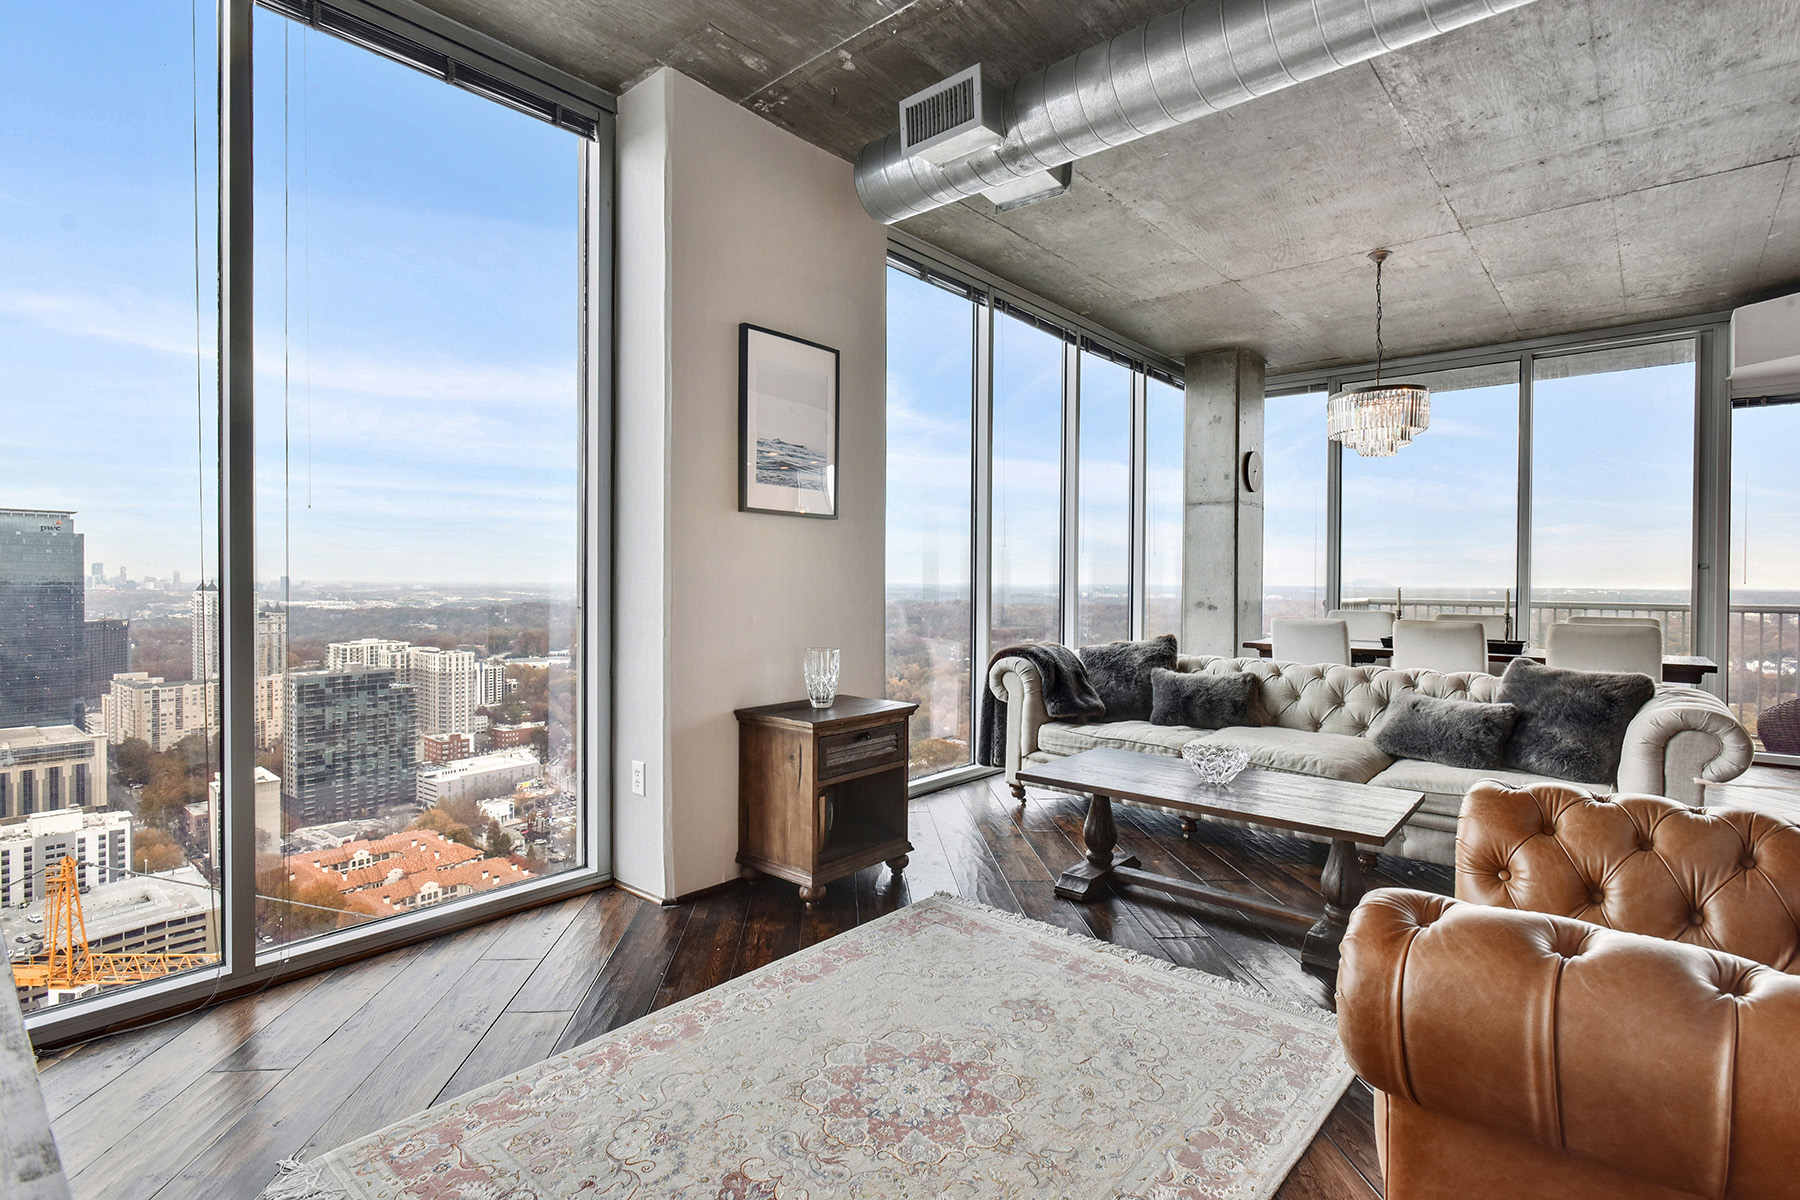 Condominium for Rent at Over-sized One Bedroom Corner Unit With Skyline Views! 855 Peachtree Street NE #3312 Atlanta, Georgia 30308 United States